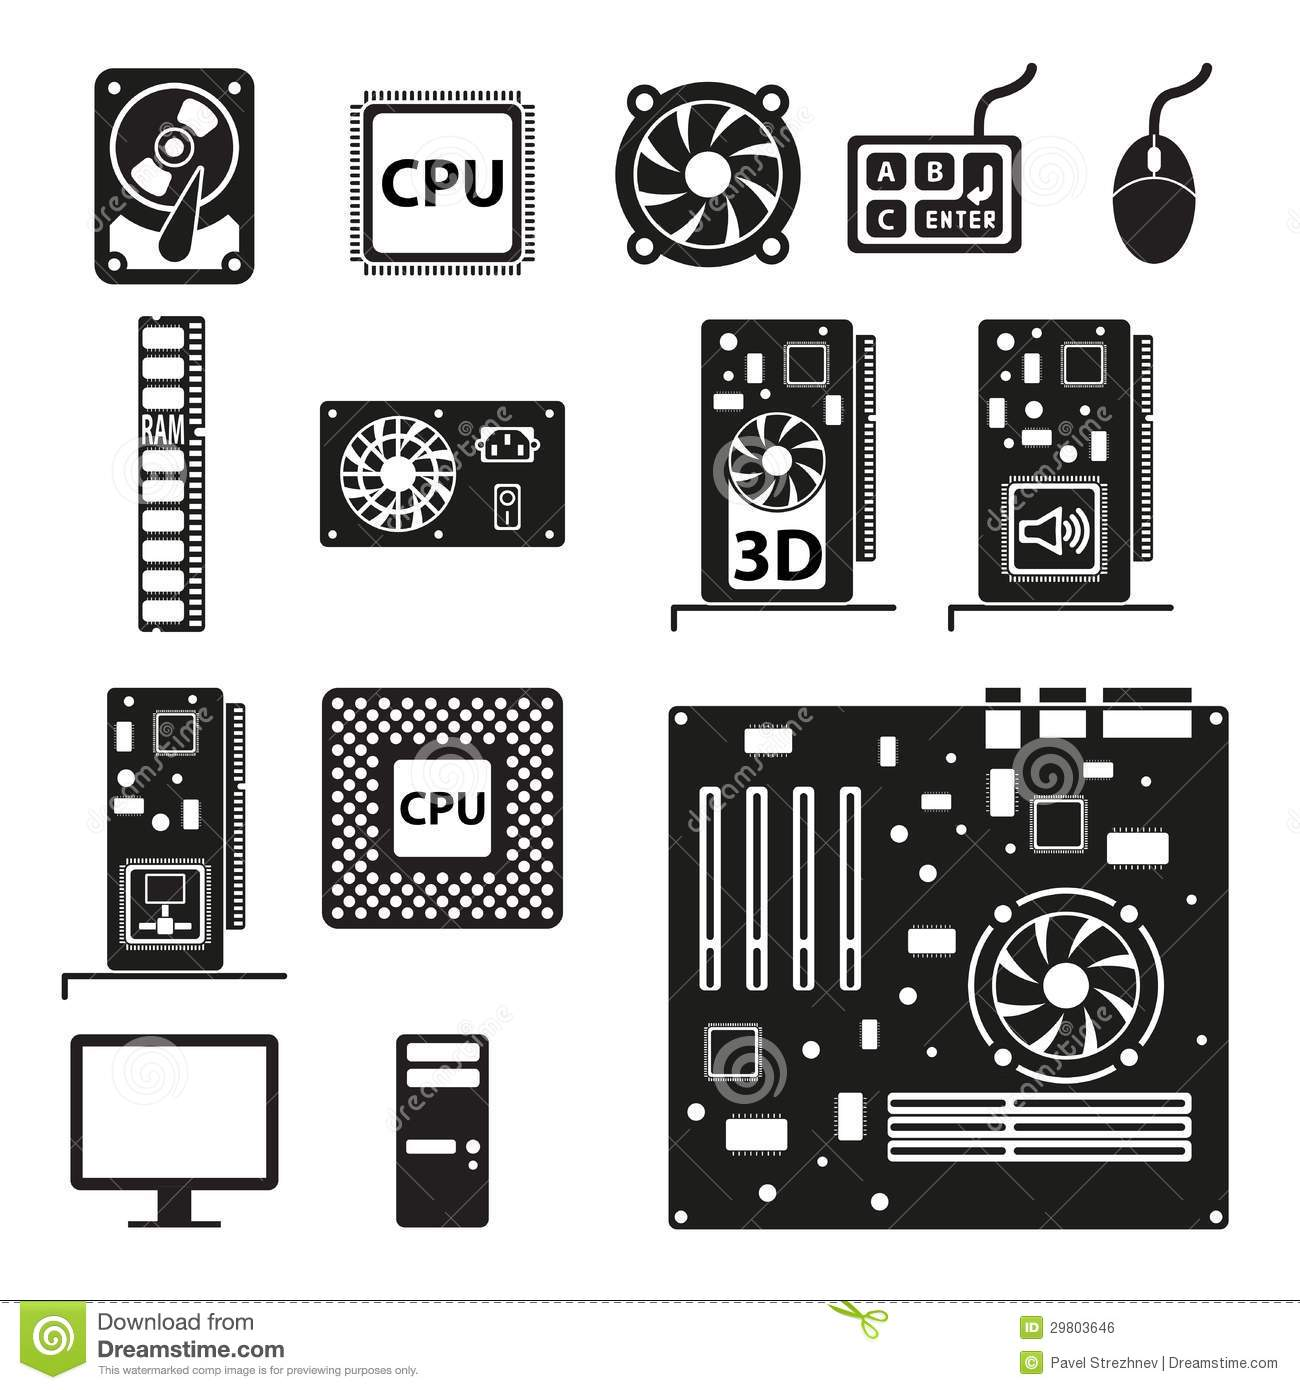 Clipart of computer parts.